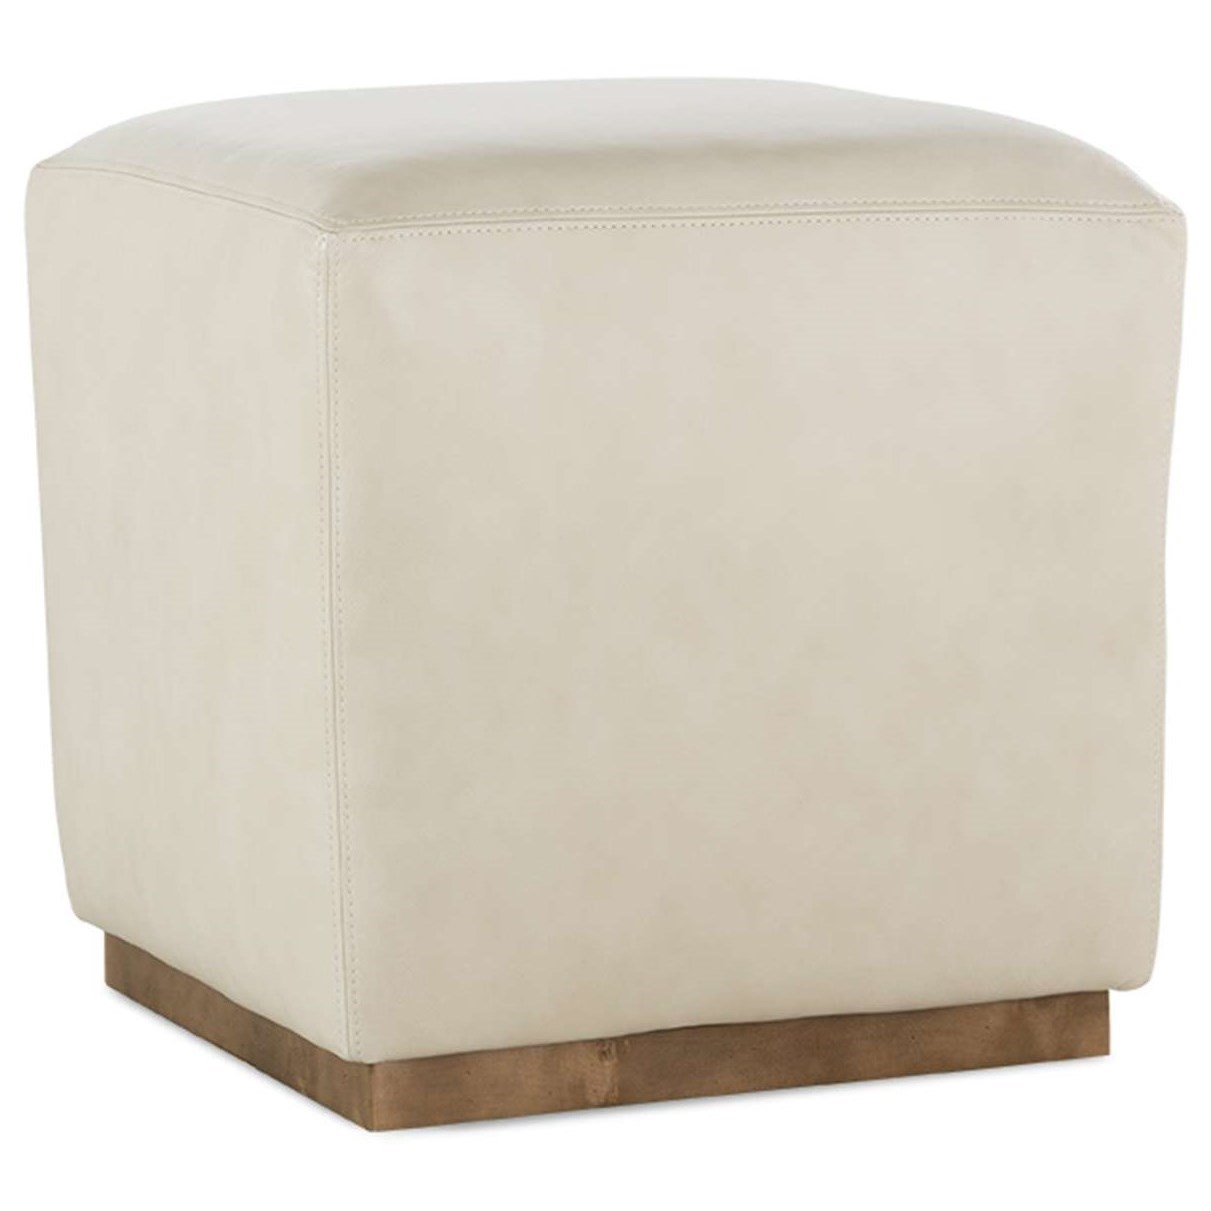 Dena Ottoman by Rowe at Baer's Furniture